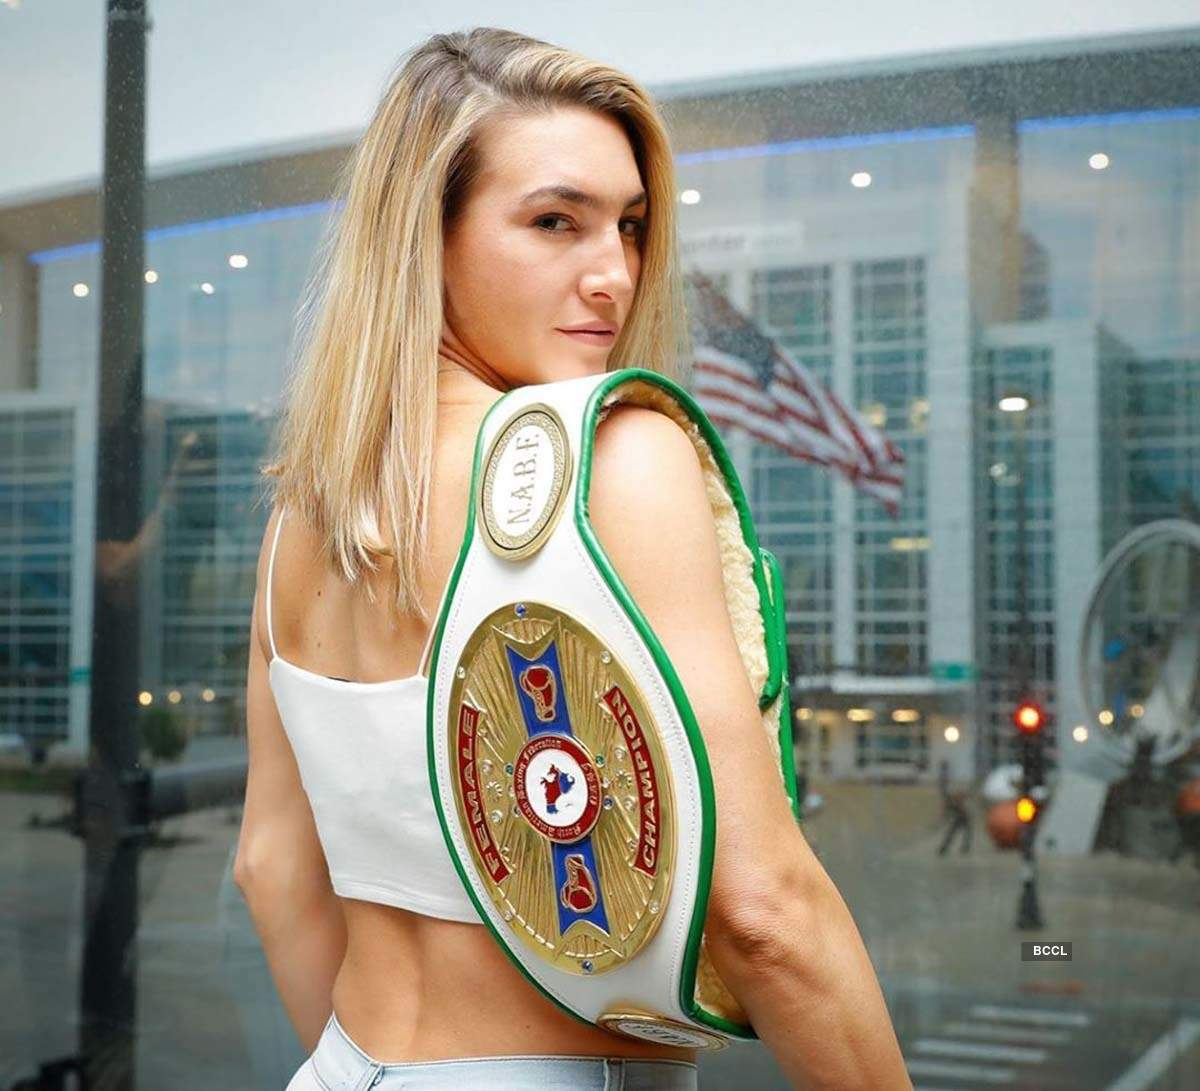 American boxer Mikaela Mayer tests positive for COVID-19